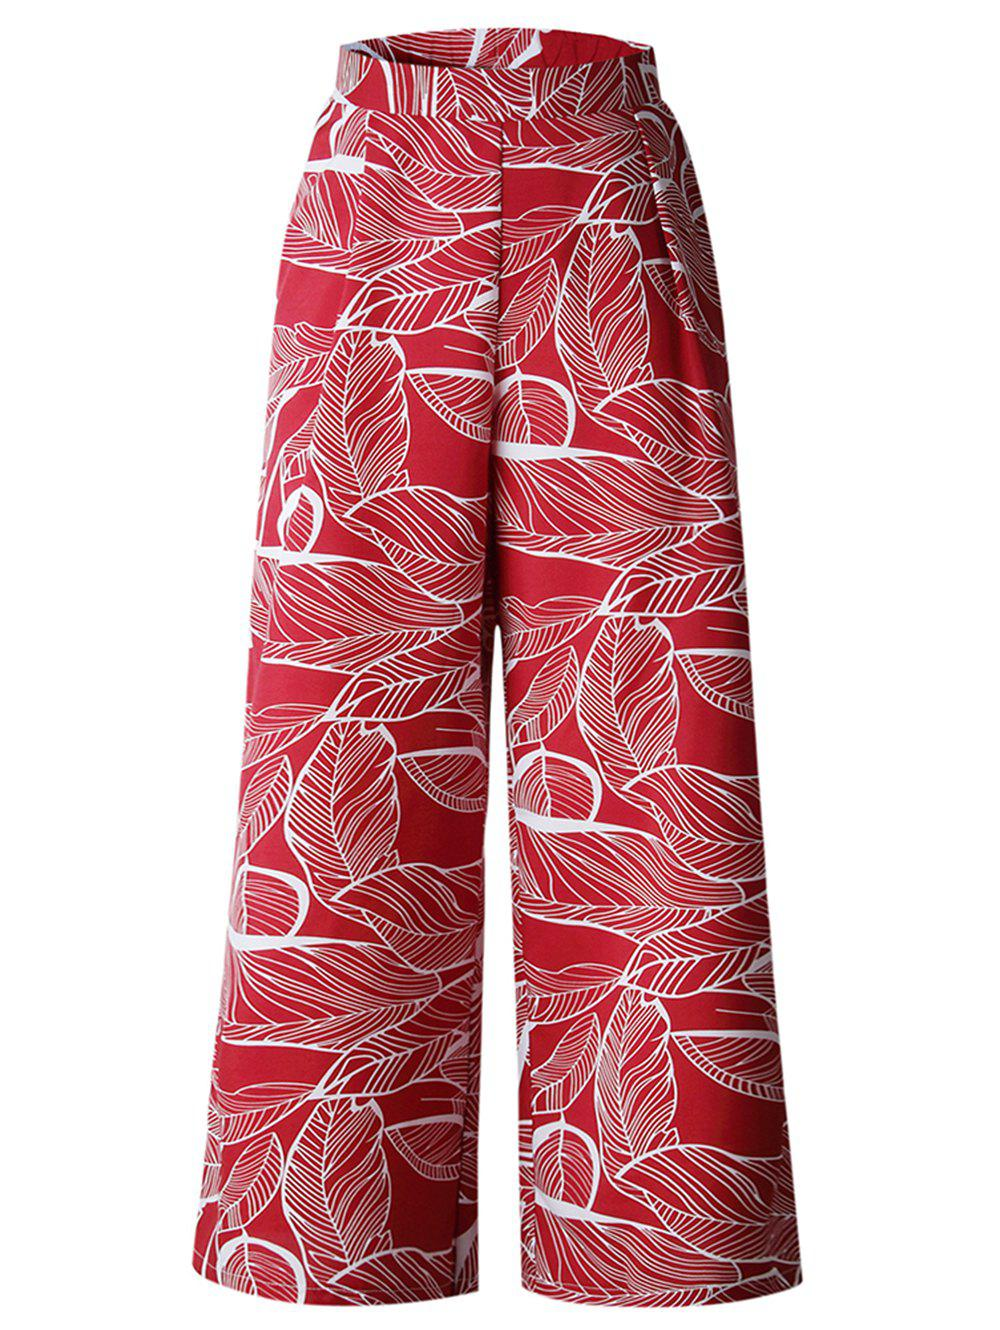 Store Womens Casual Floral Print High Waist Wide Leg Long Palazzo Pants with Pockets